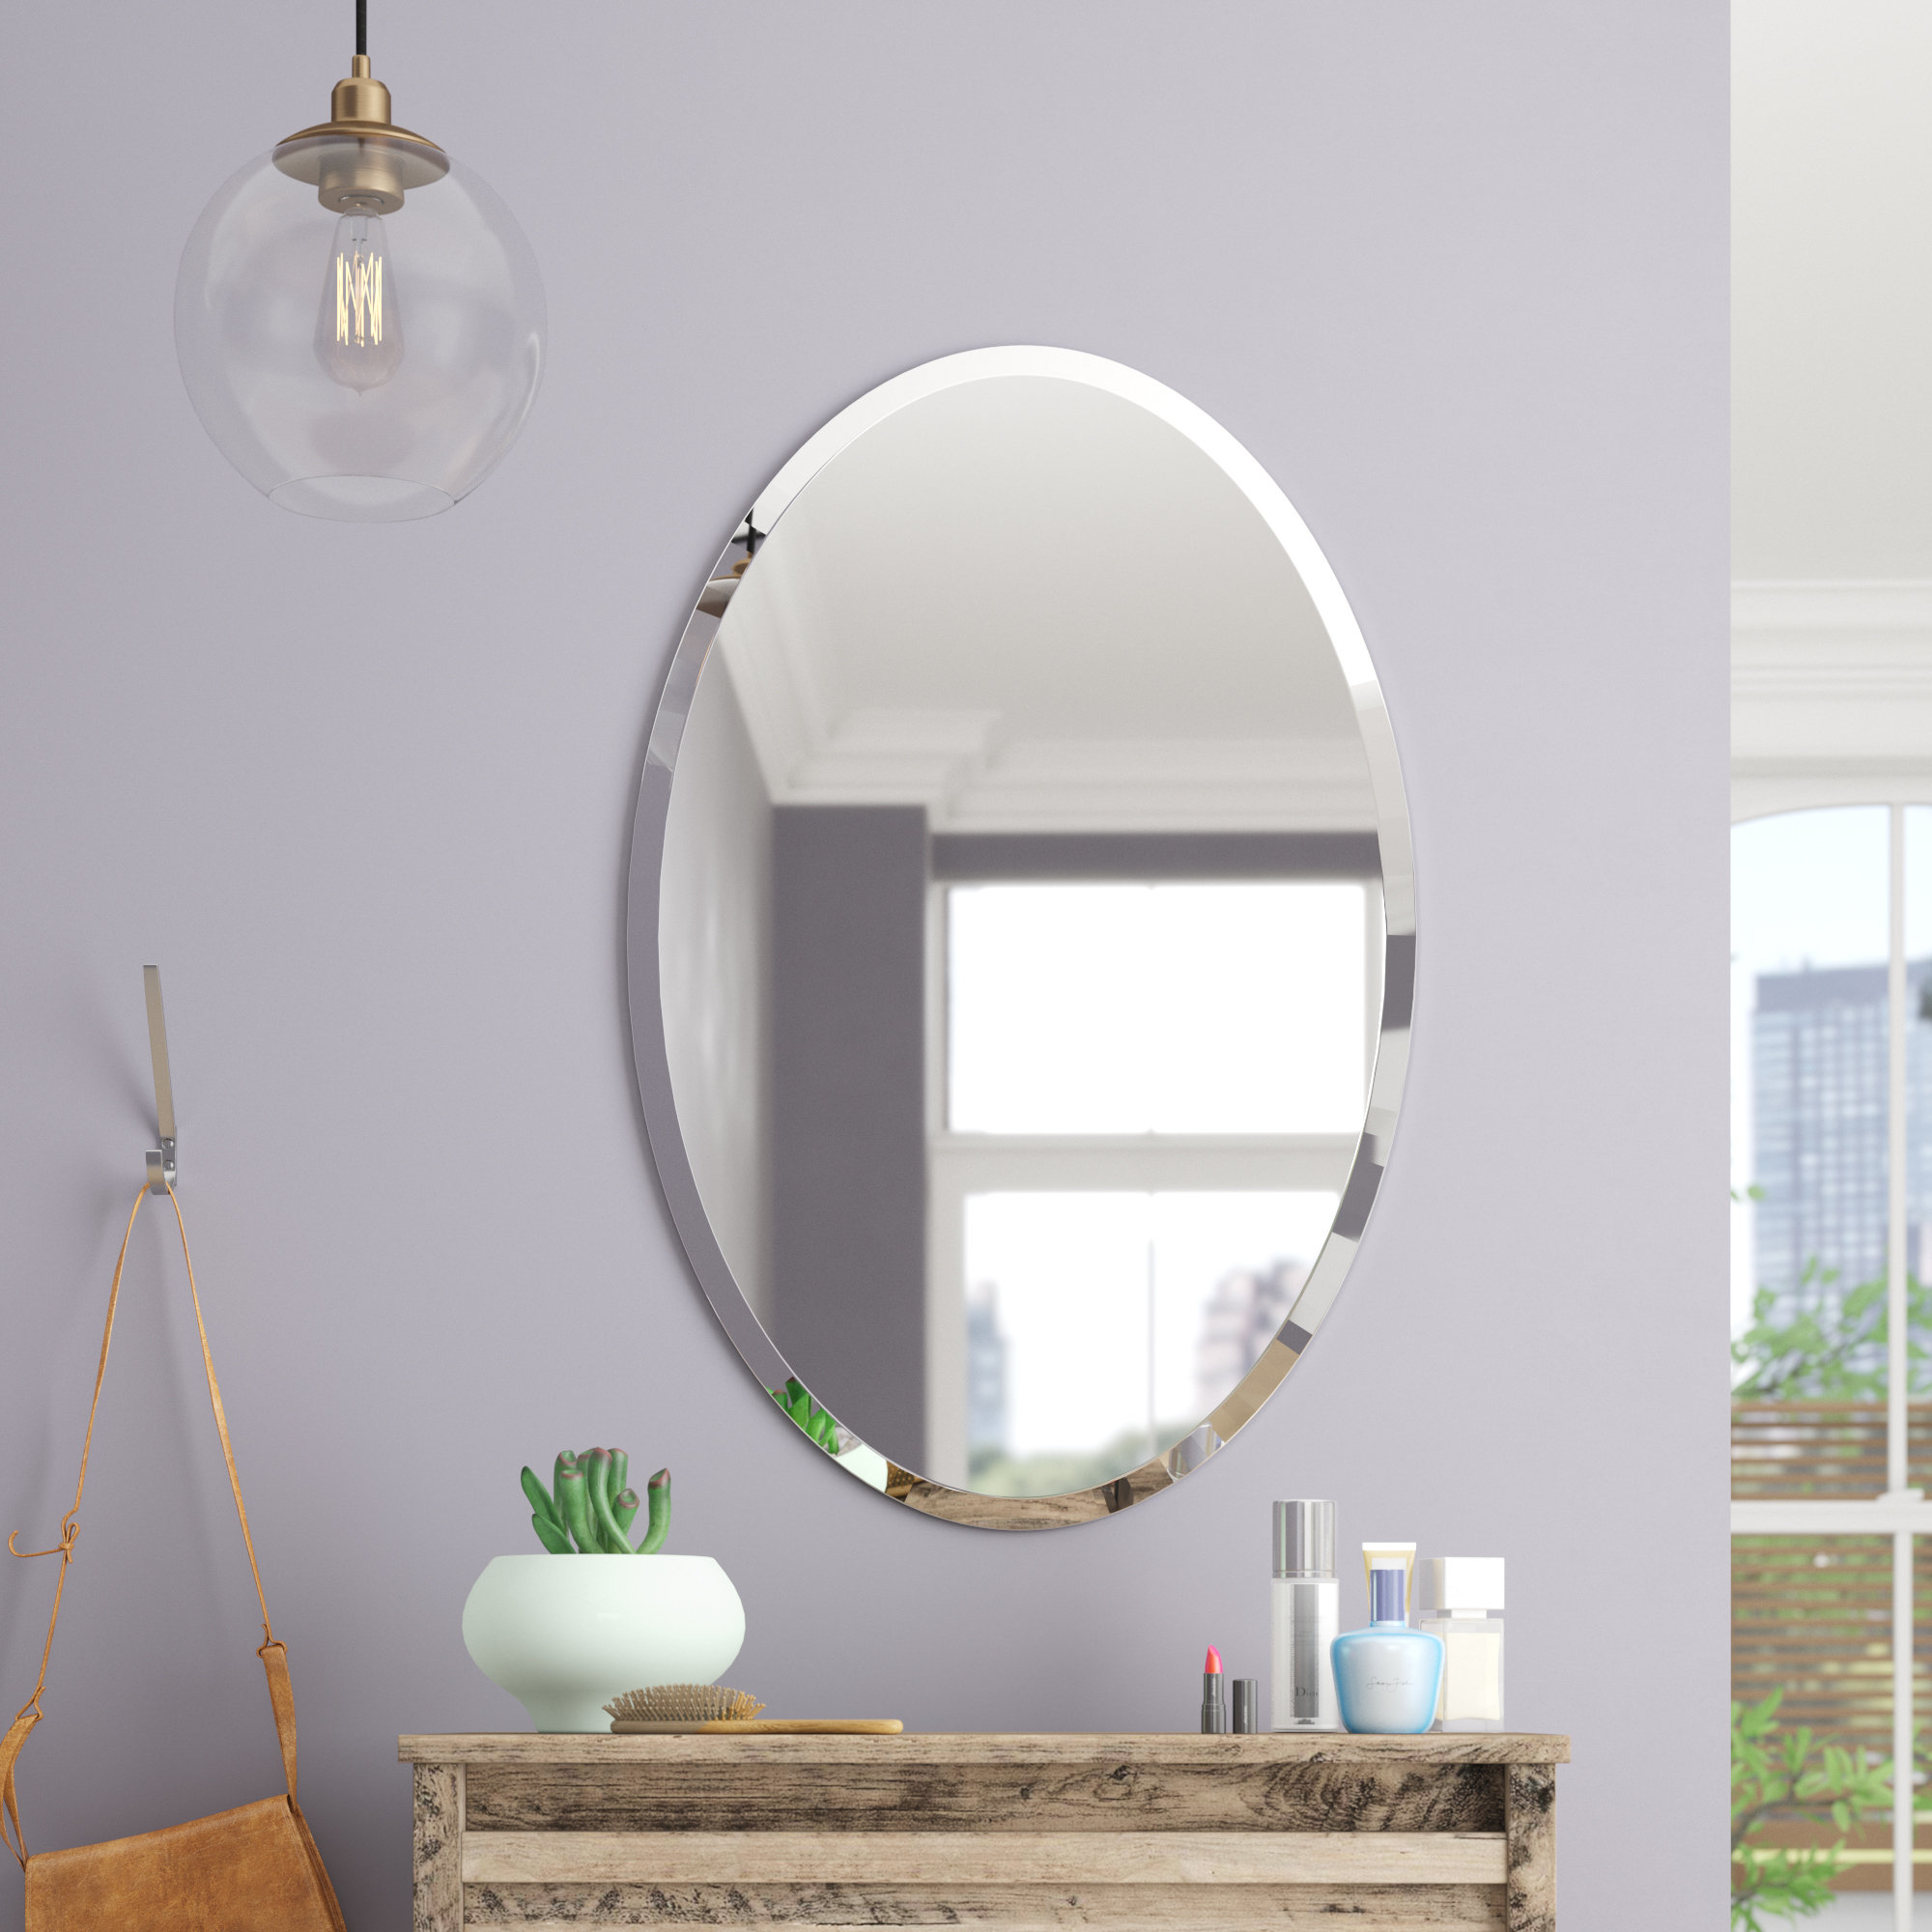 24 Inch Mirror | Wayfair Intended For Luna Accent Mirrors (Gallery 23 of 30)